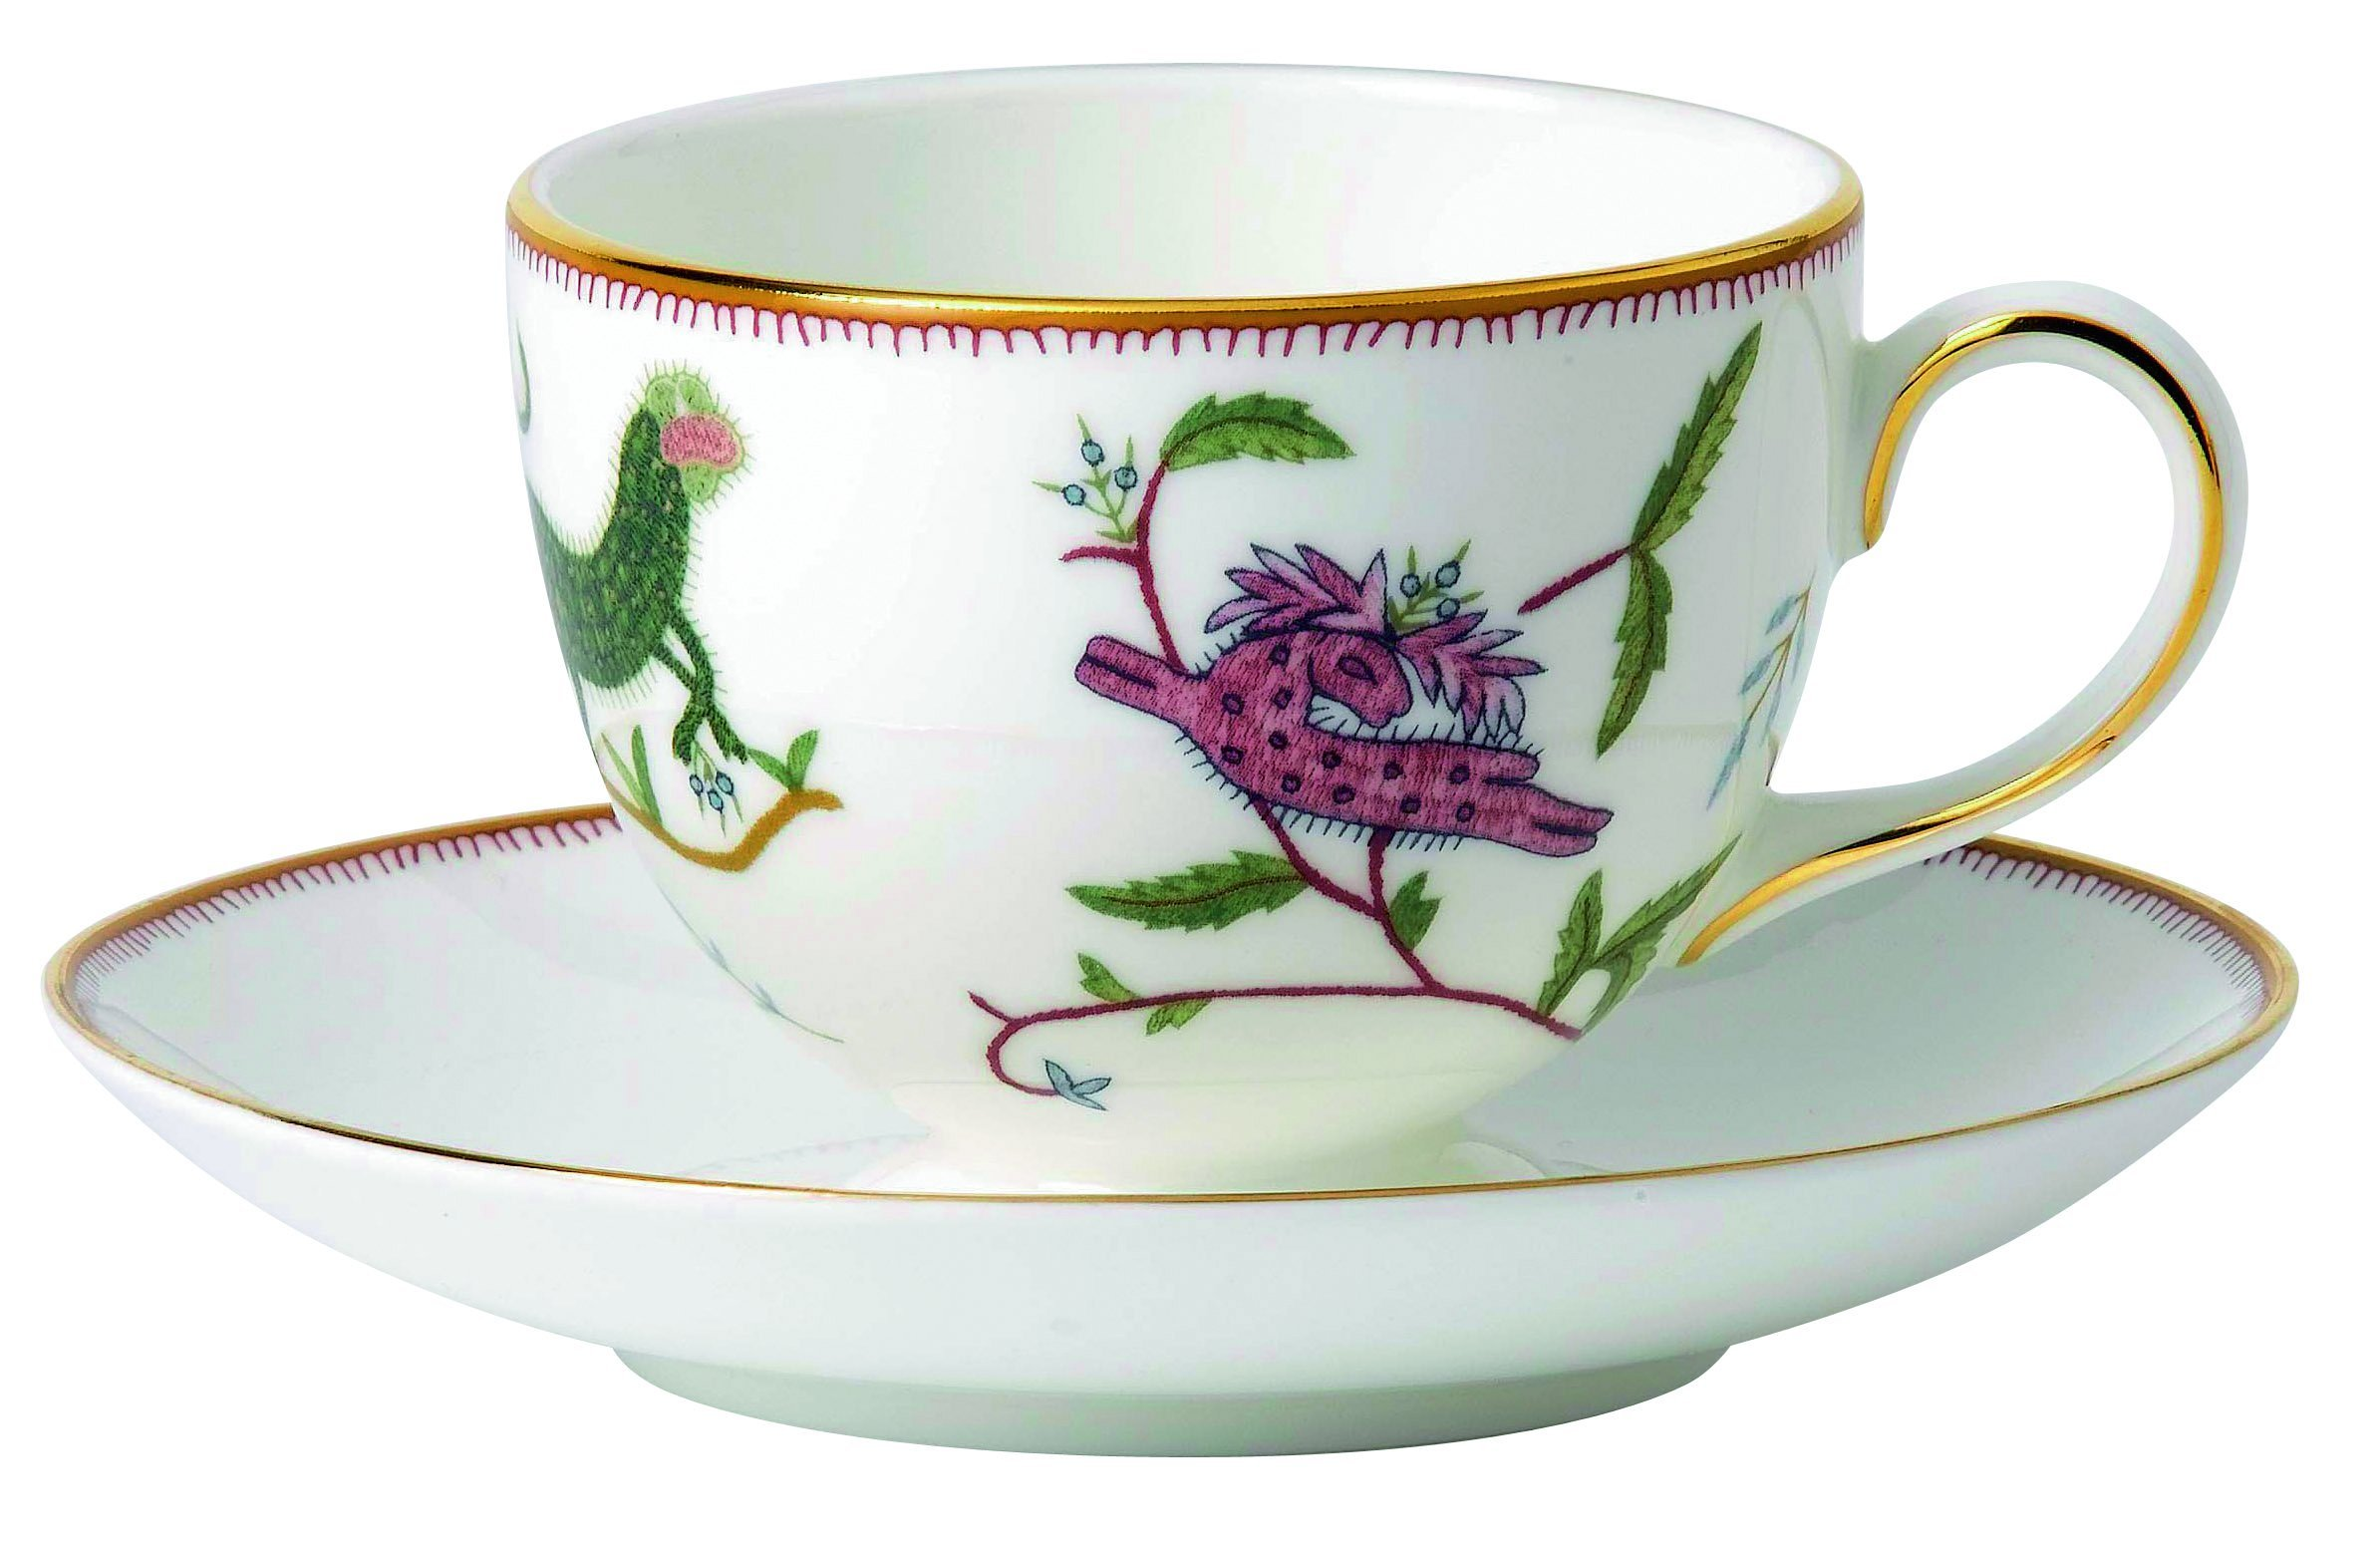 Wedgwood Mythical Creatures Teacup and Saucer Set, Leigh by Wedgwood (Image #1)